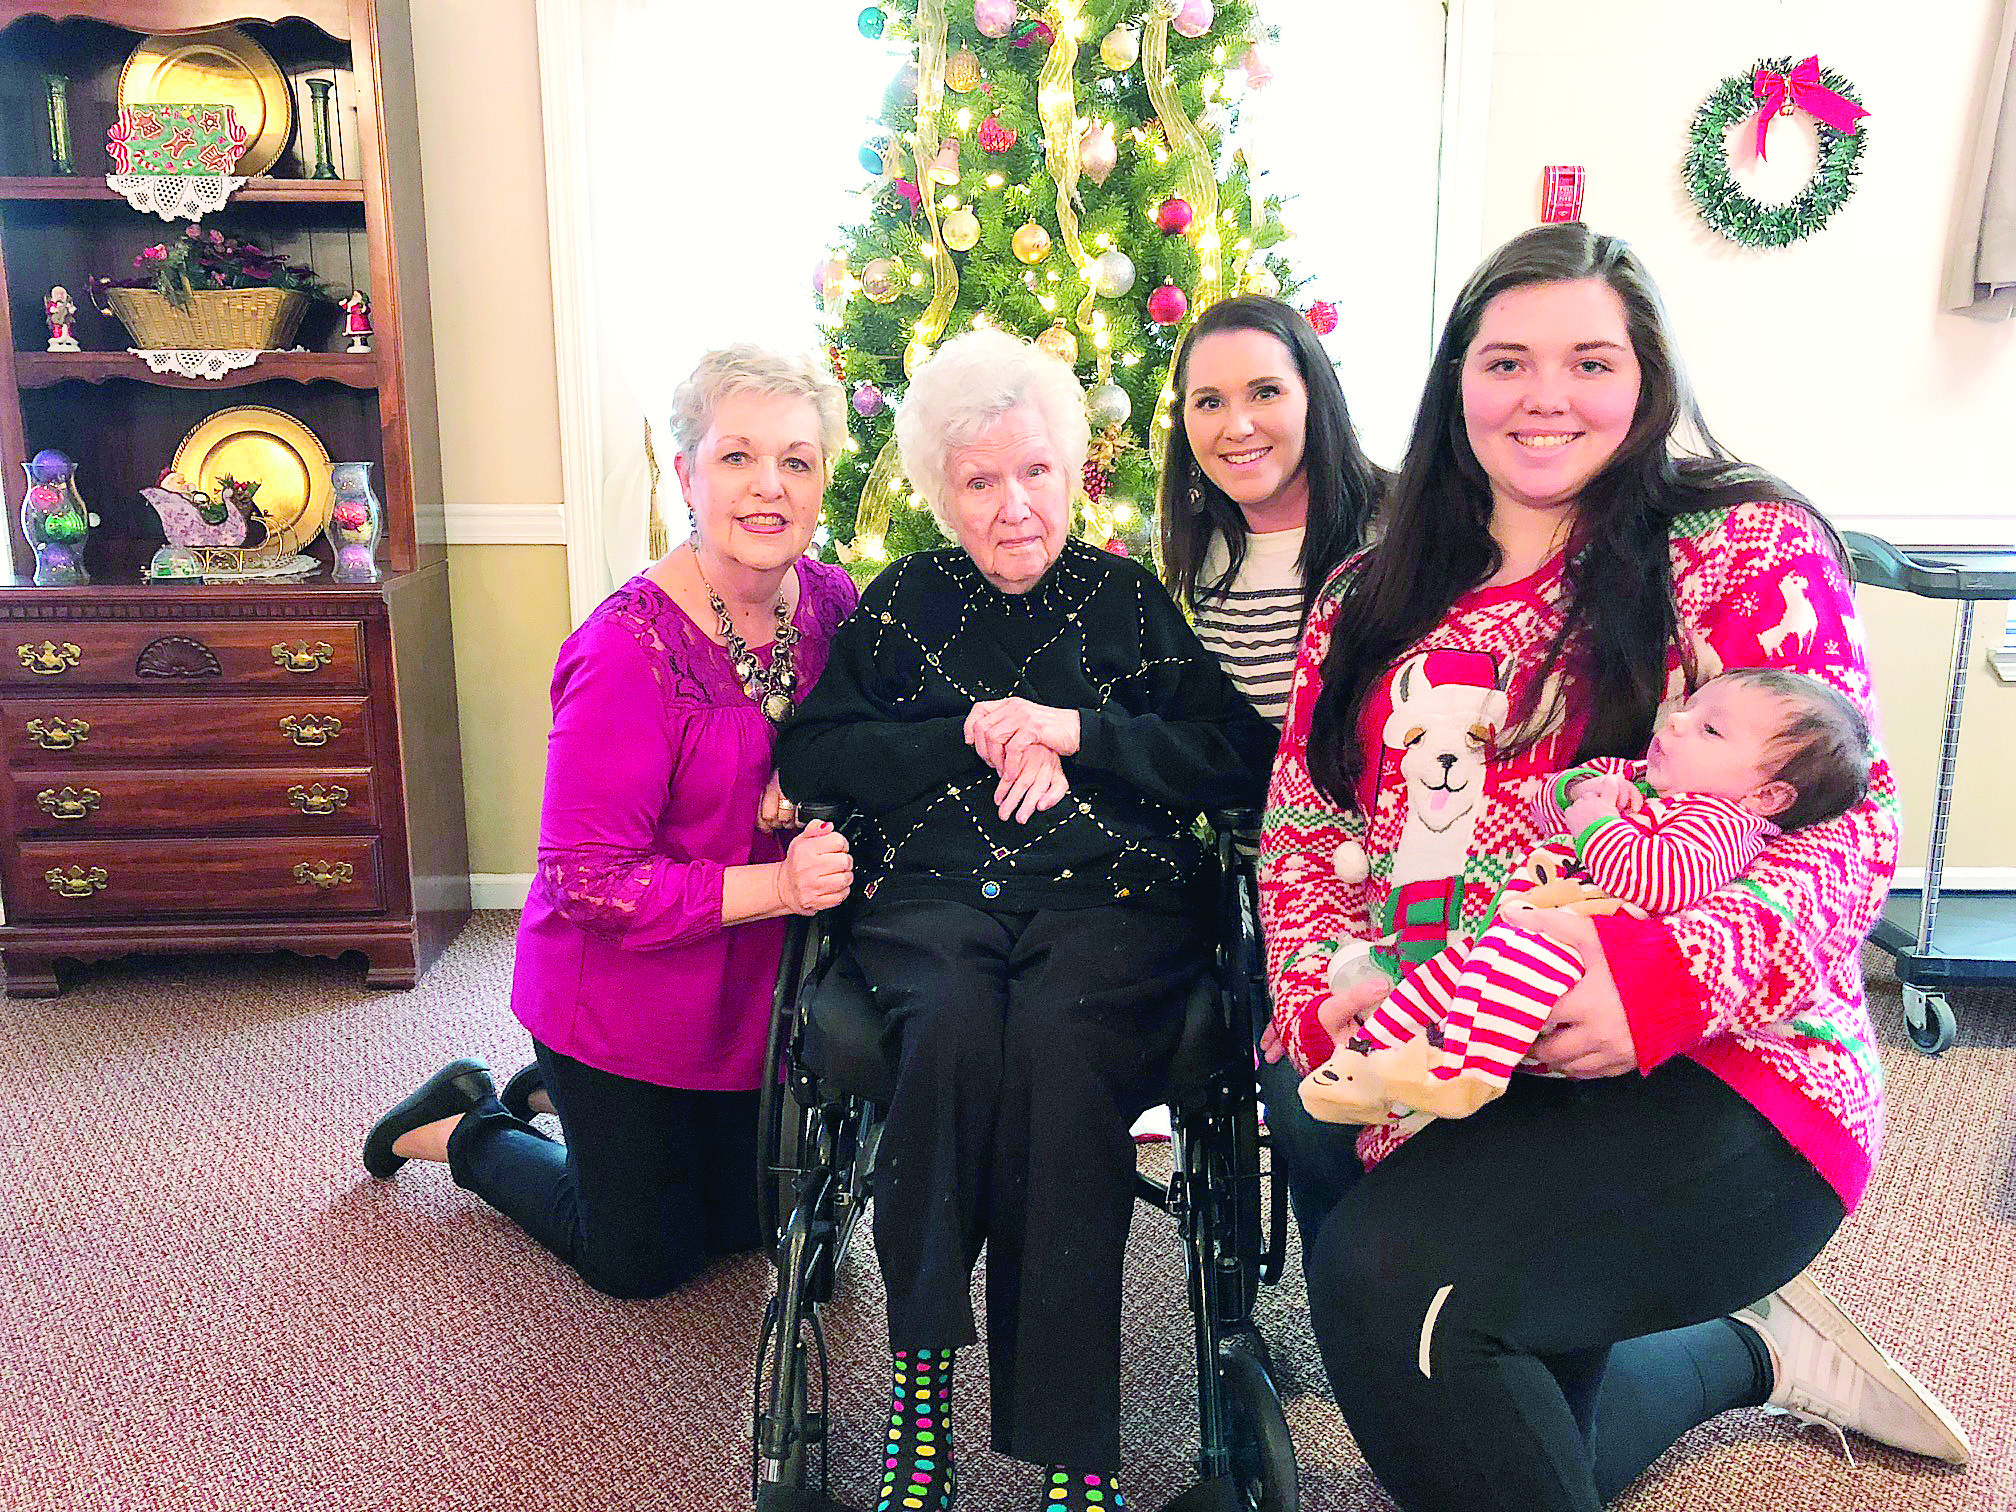 Deatrice Boyd of Gardendale, who will turn 98 years young in June, is also celebrating five generations of her family. Boyd (second from left) is pictured above with her daughter, Delores Boyd Tuck of Jasper, and granddaughter, Rachel Forbes, great-granddaughter, Hannah Gray, and great-great-grandson, Matthew Gray, all of Auburn.